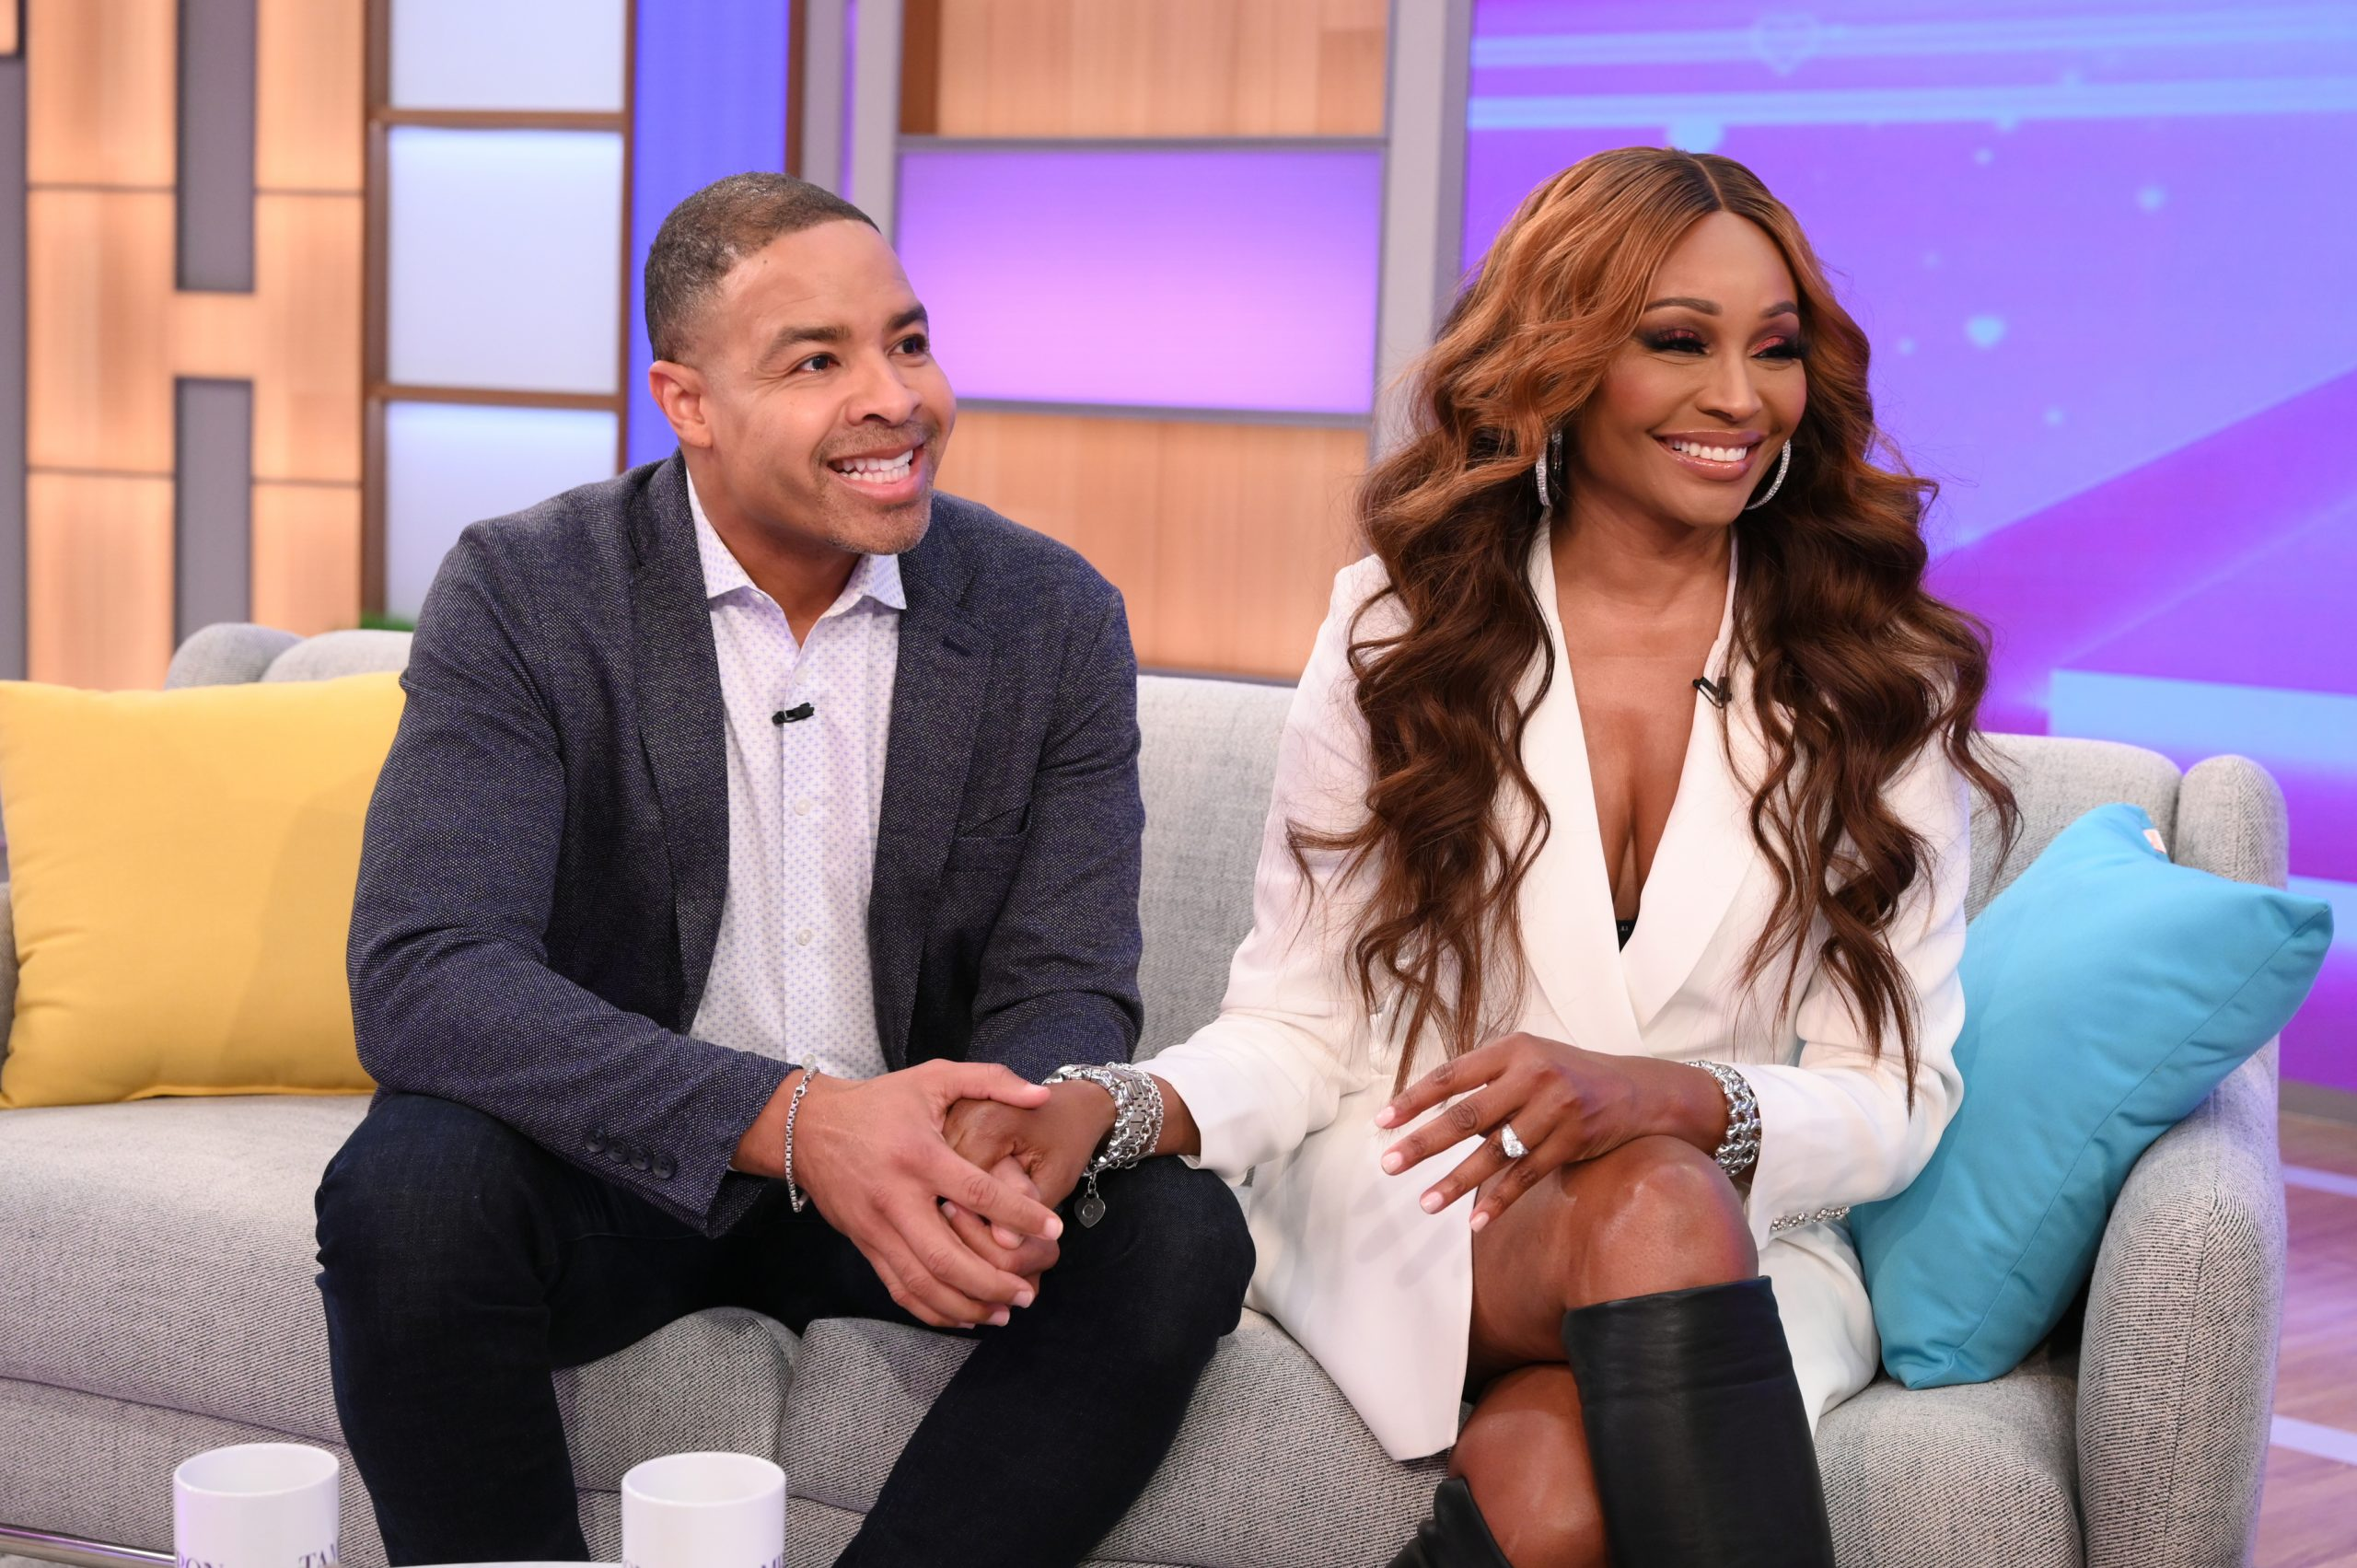 Cynthia Bailey Joins Tamron Hall To Discuss Her Decision To Share Daughter's Personal Story